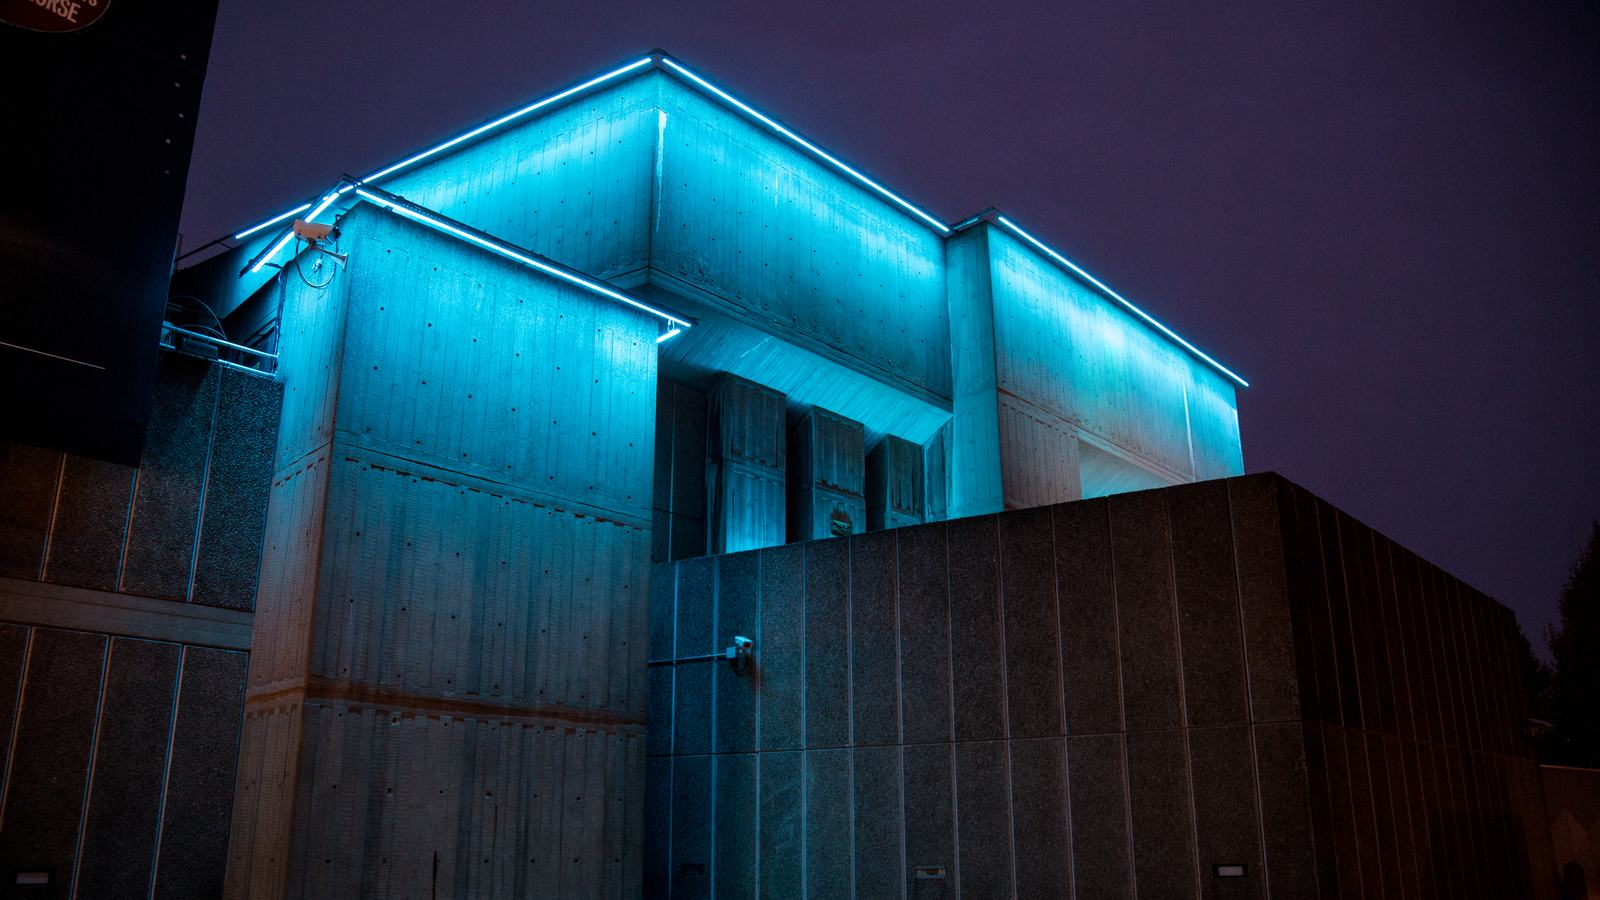 David Batchelor's Sixty Minute Spectrum Redux installation illuminates the Southbank Centre at night